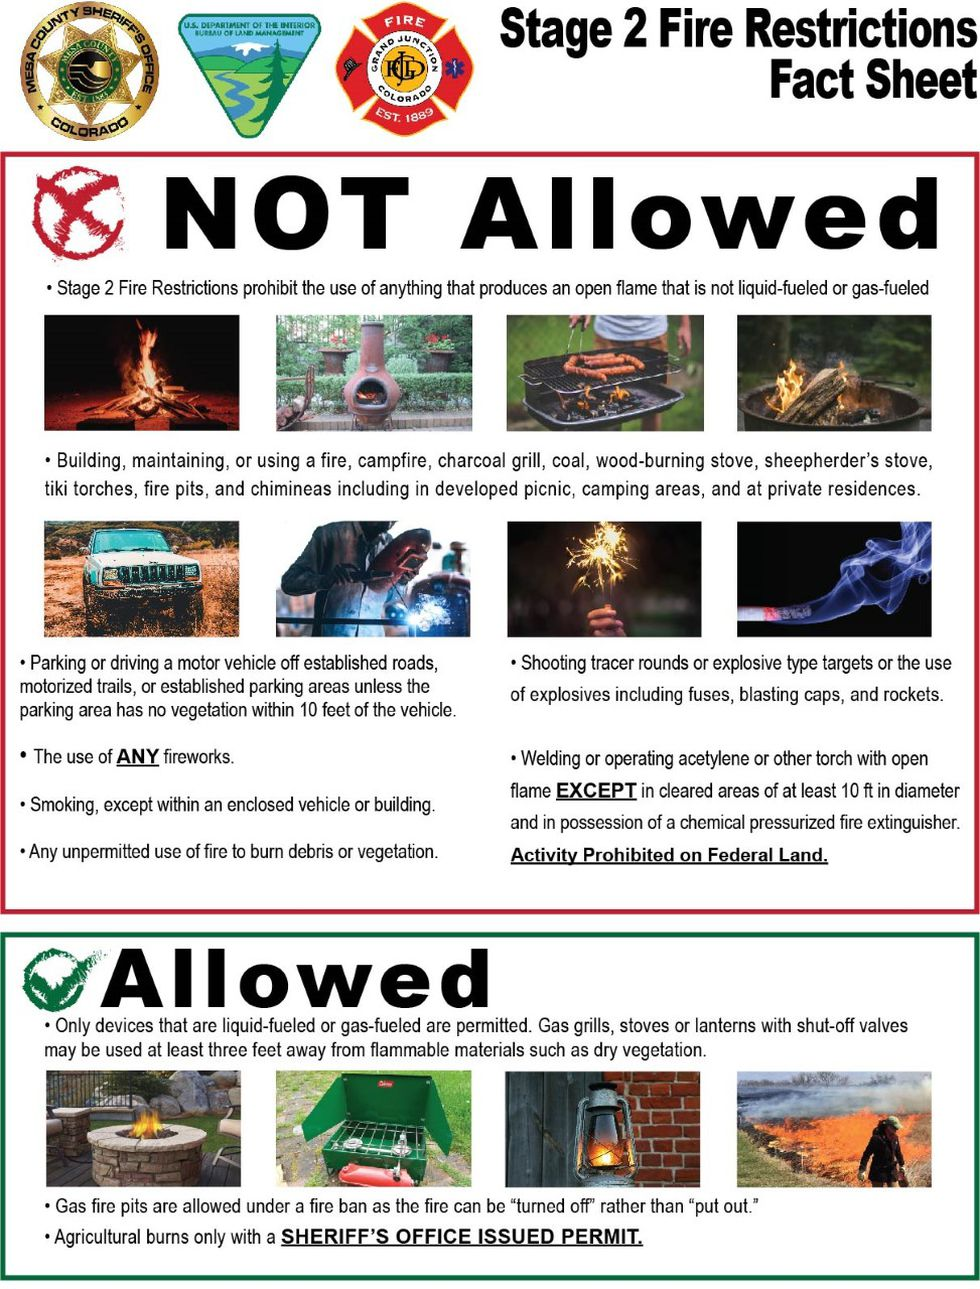 What is allowed and what's not allowed under Stage 2 restrictions.